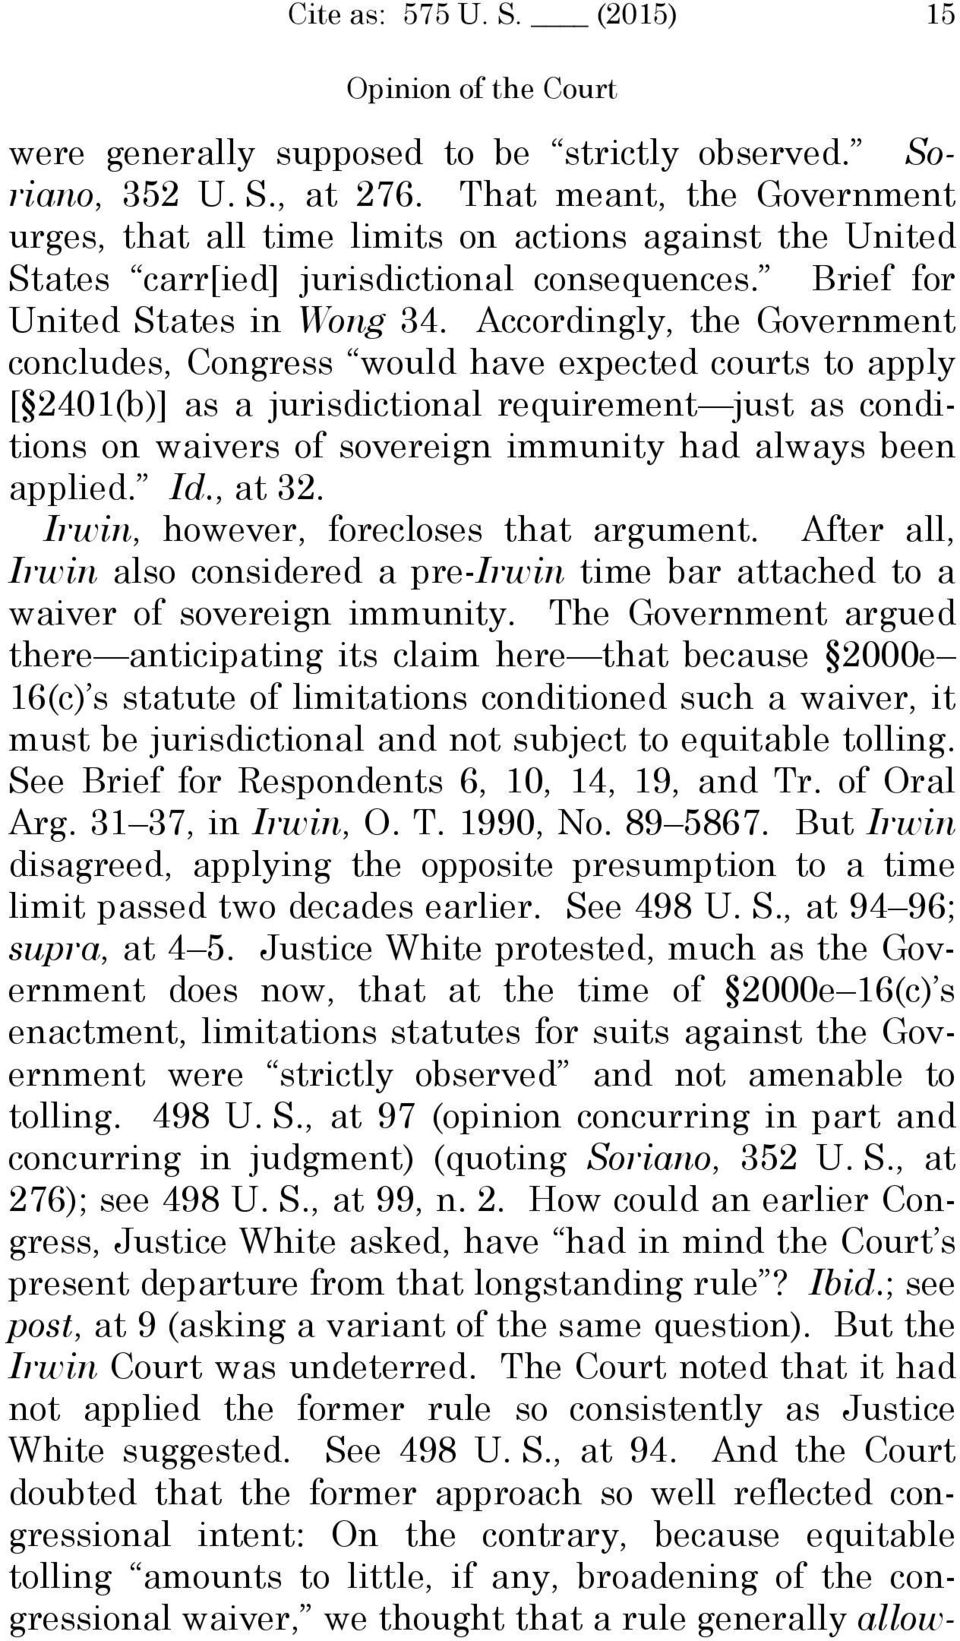 Accordingly, the Government concludes, Congress would have expected courts to apply [ 2401(b)] as a jurisdictional requirement just as conditions on waivers of sovereign immunity had always been